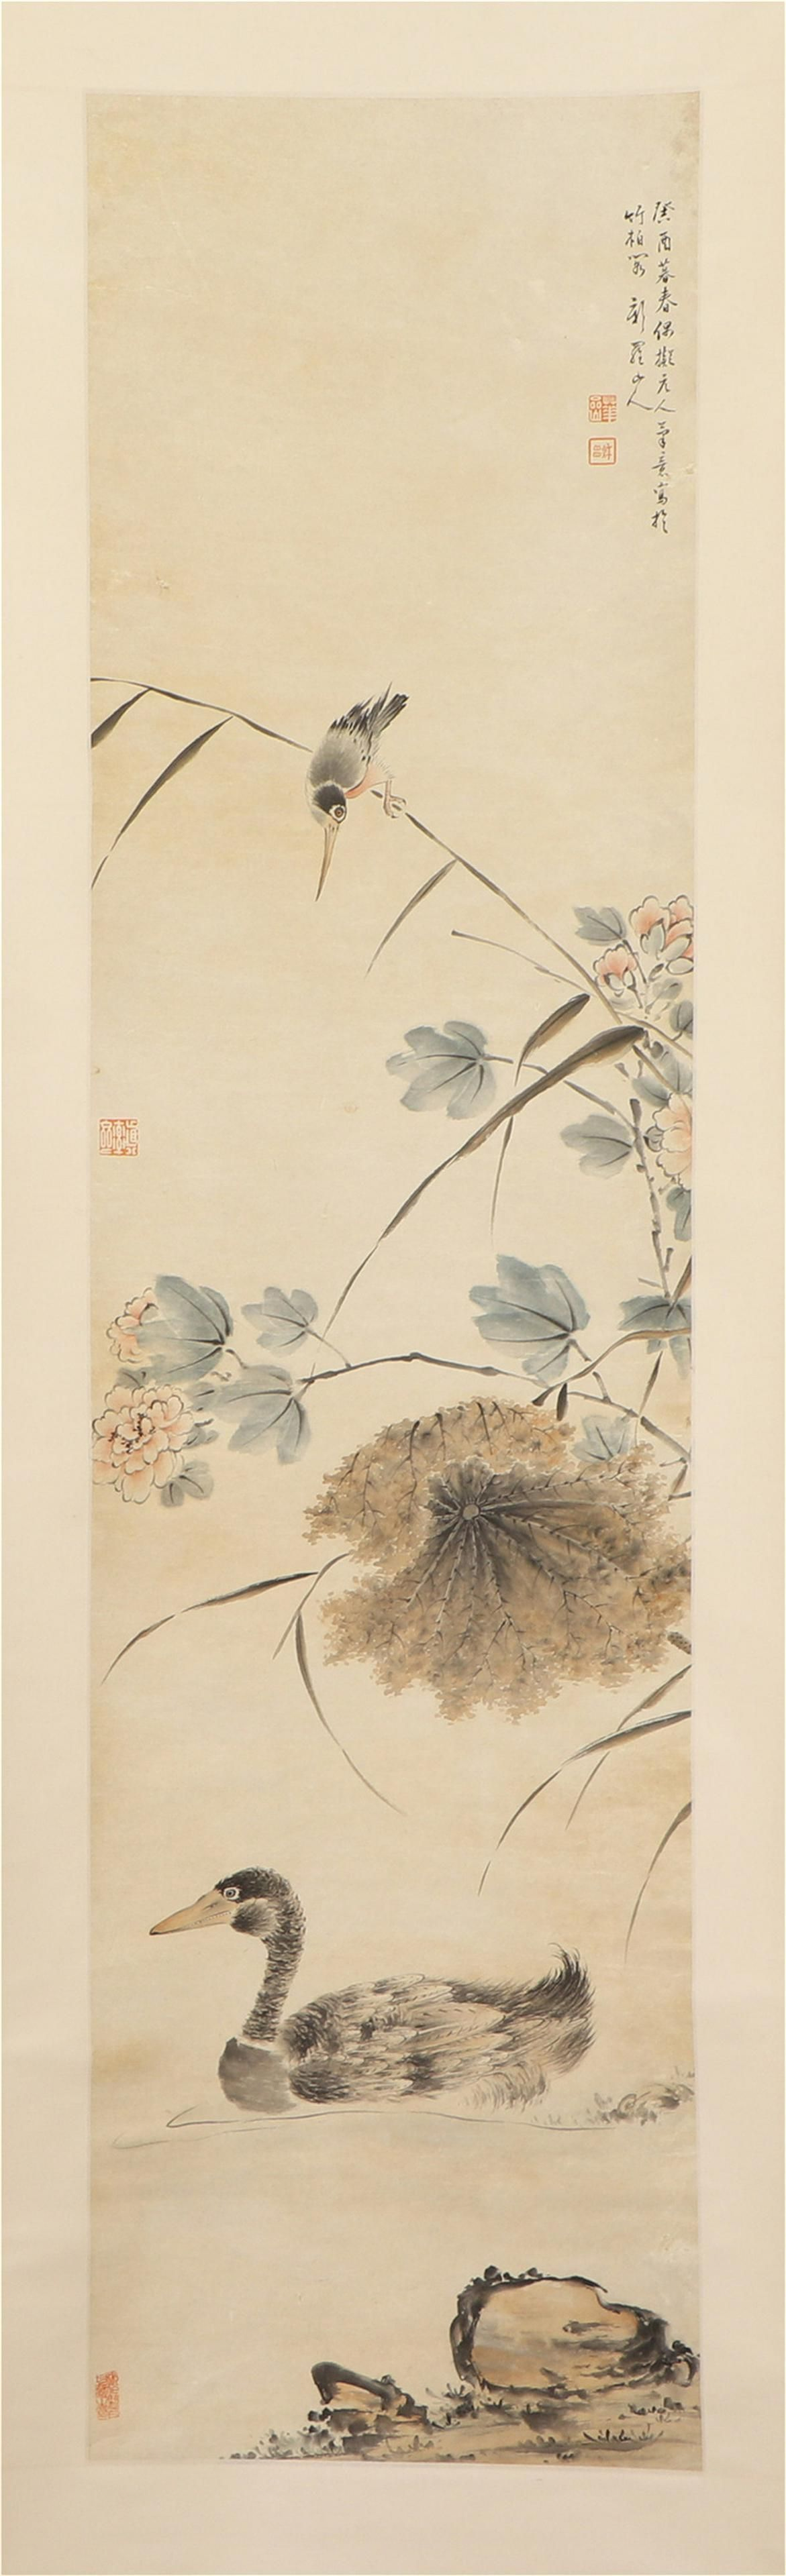 A Chinese Painting Hanging-scroll of Water Bird